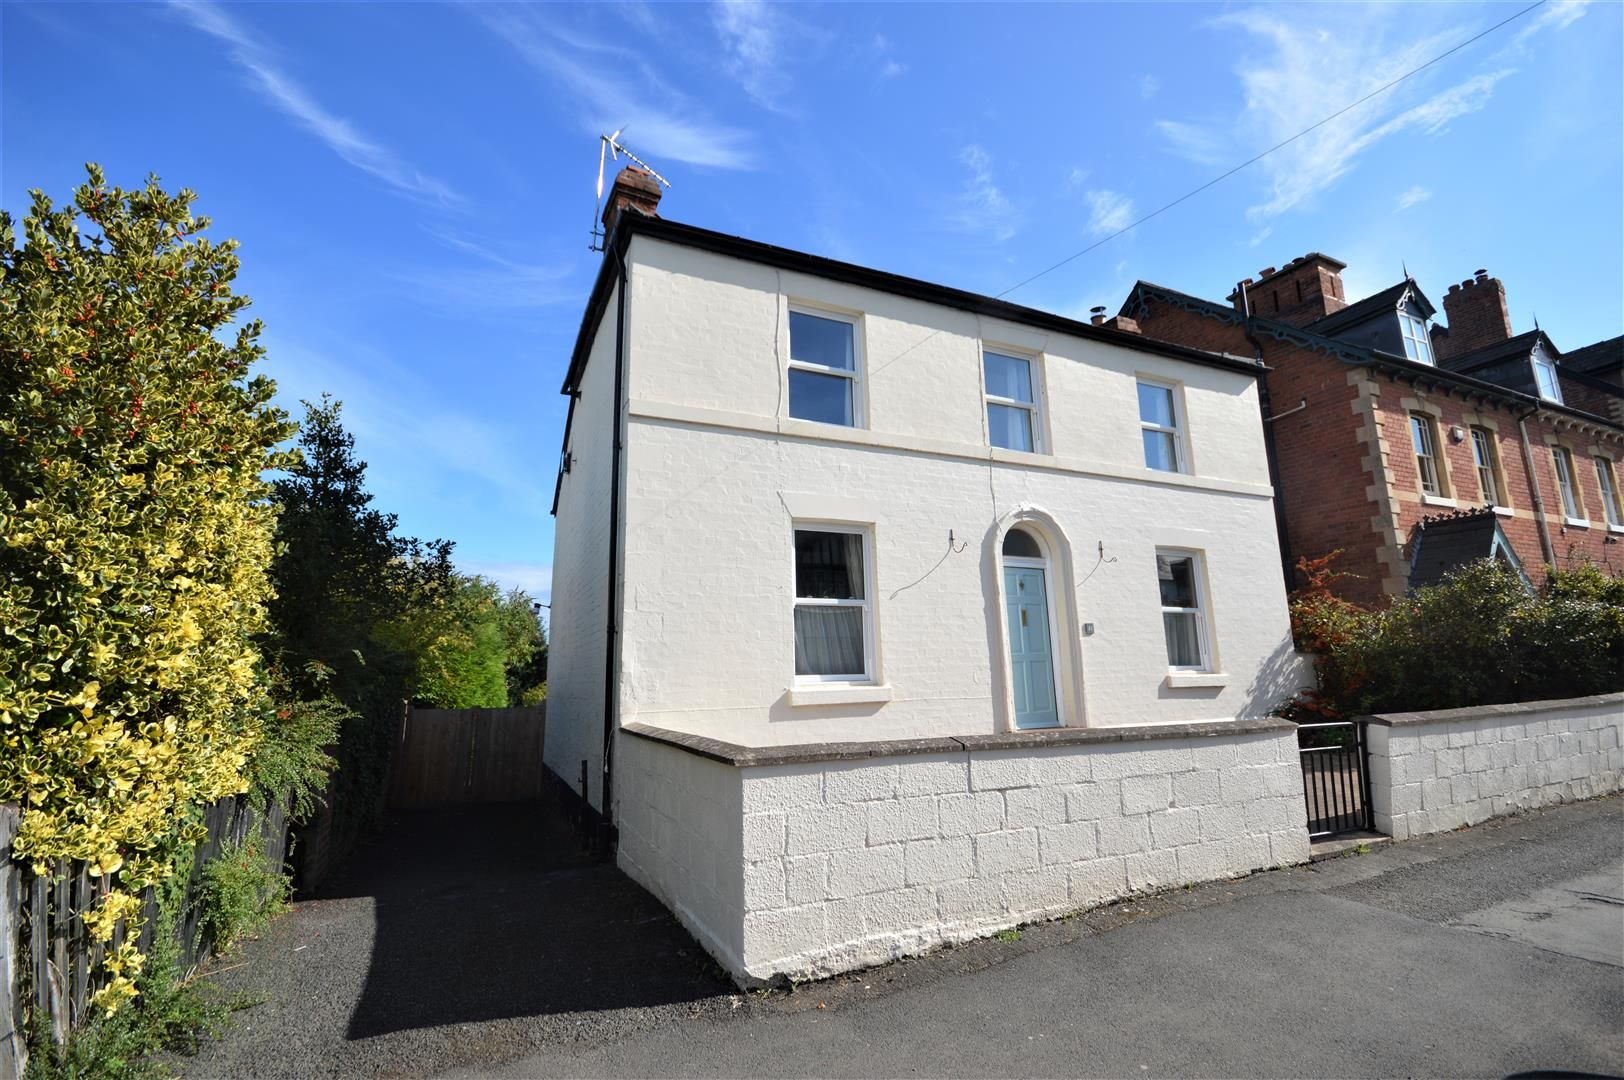 3 bed detached for sale in Leominster, HR6